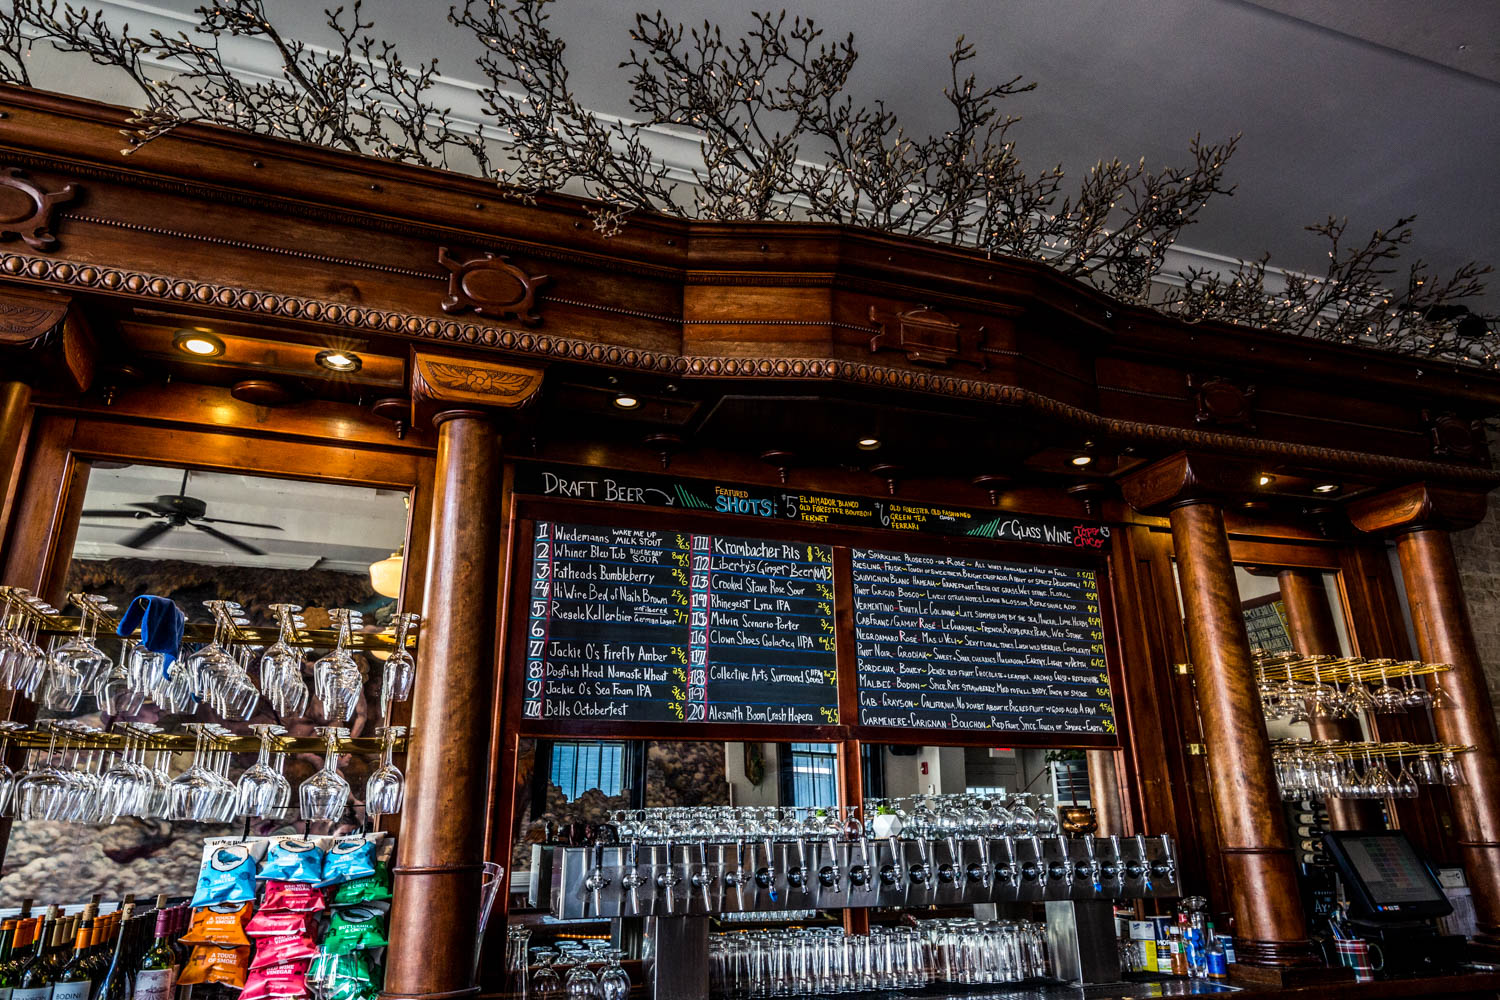 PLACE: Liberty's Bar & Bottle Shop / ADDRESS: 1427 Main Street (Over-the-Rhine) / Stop by Liberty's wine and beer bar with doggos to try one of their 15 glasses of wines or one of the 20 rotating drafts. If you're in the market to take some home, you can shop among the 40 craft beers and 100 bottles of wines. Dogs are really helpful at picking the best kinds. / Image: Catherine Viox // Published: 10.14.19